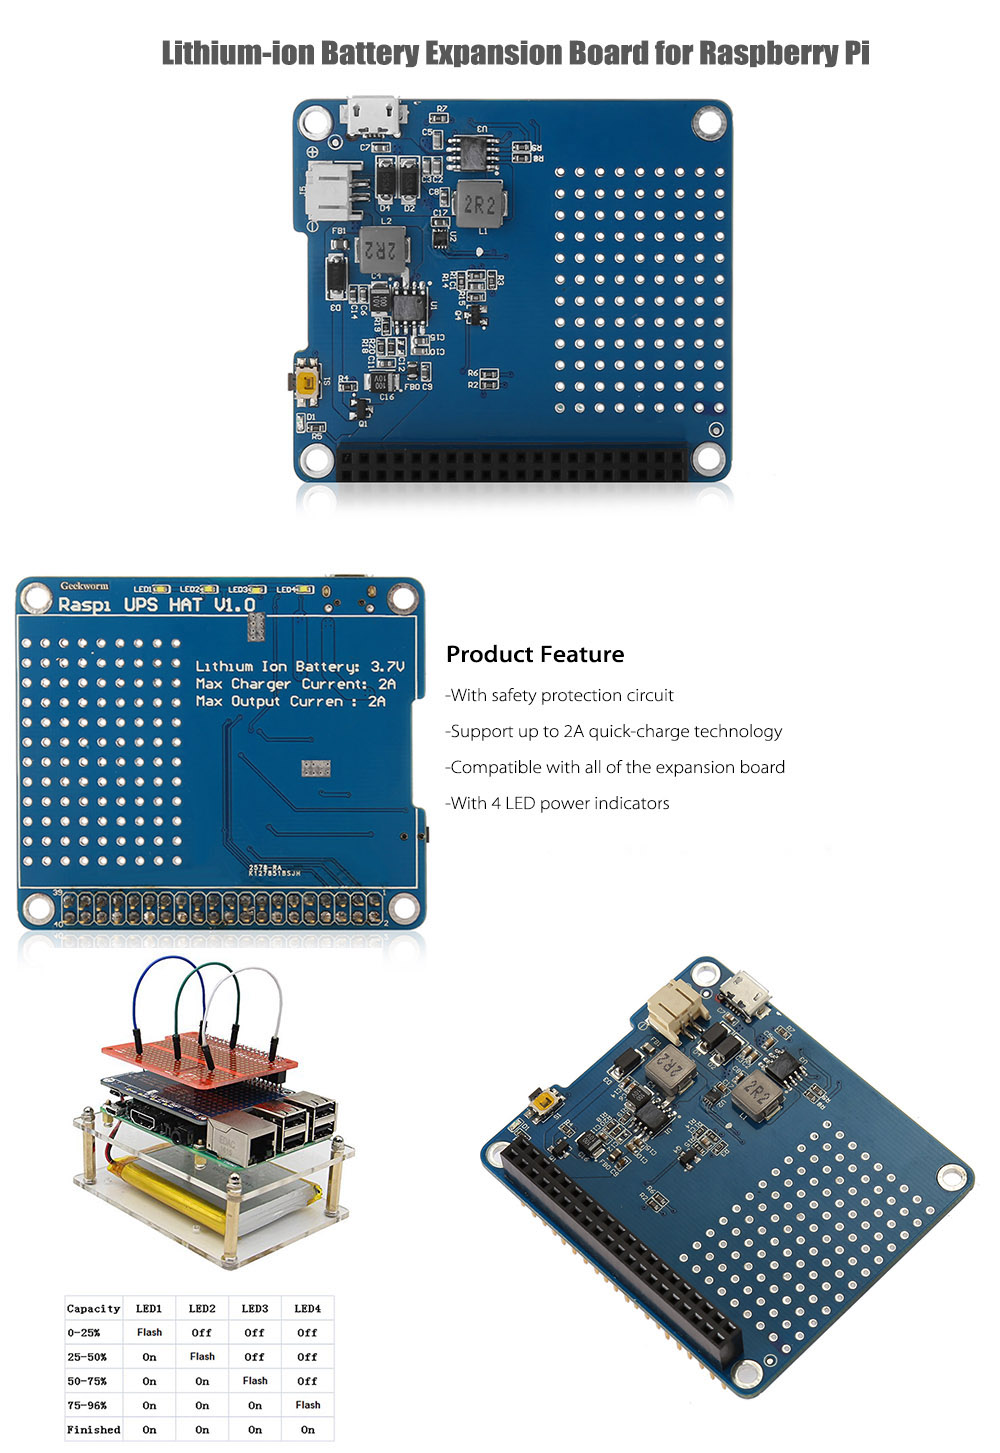 Lithium-ion Battery Expansion Board for Raspberry Pi